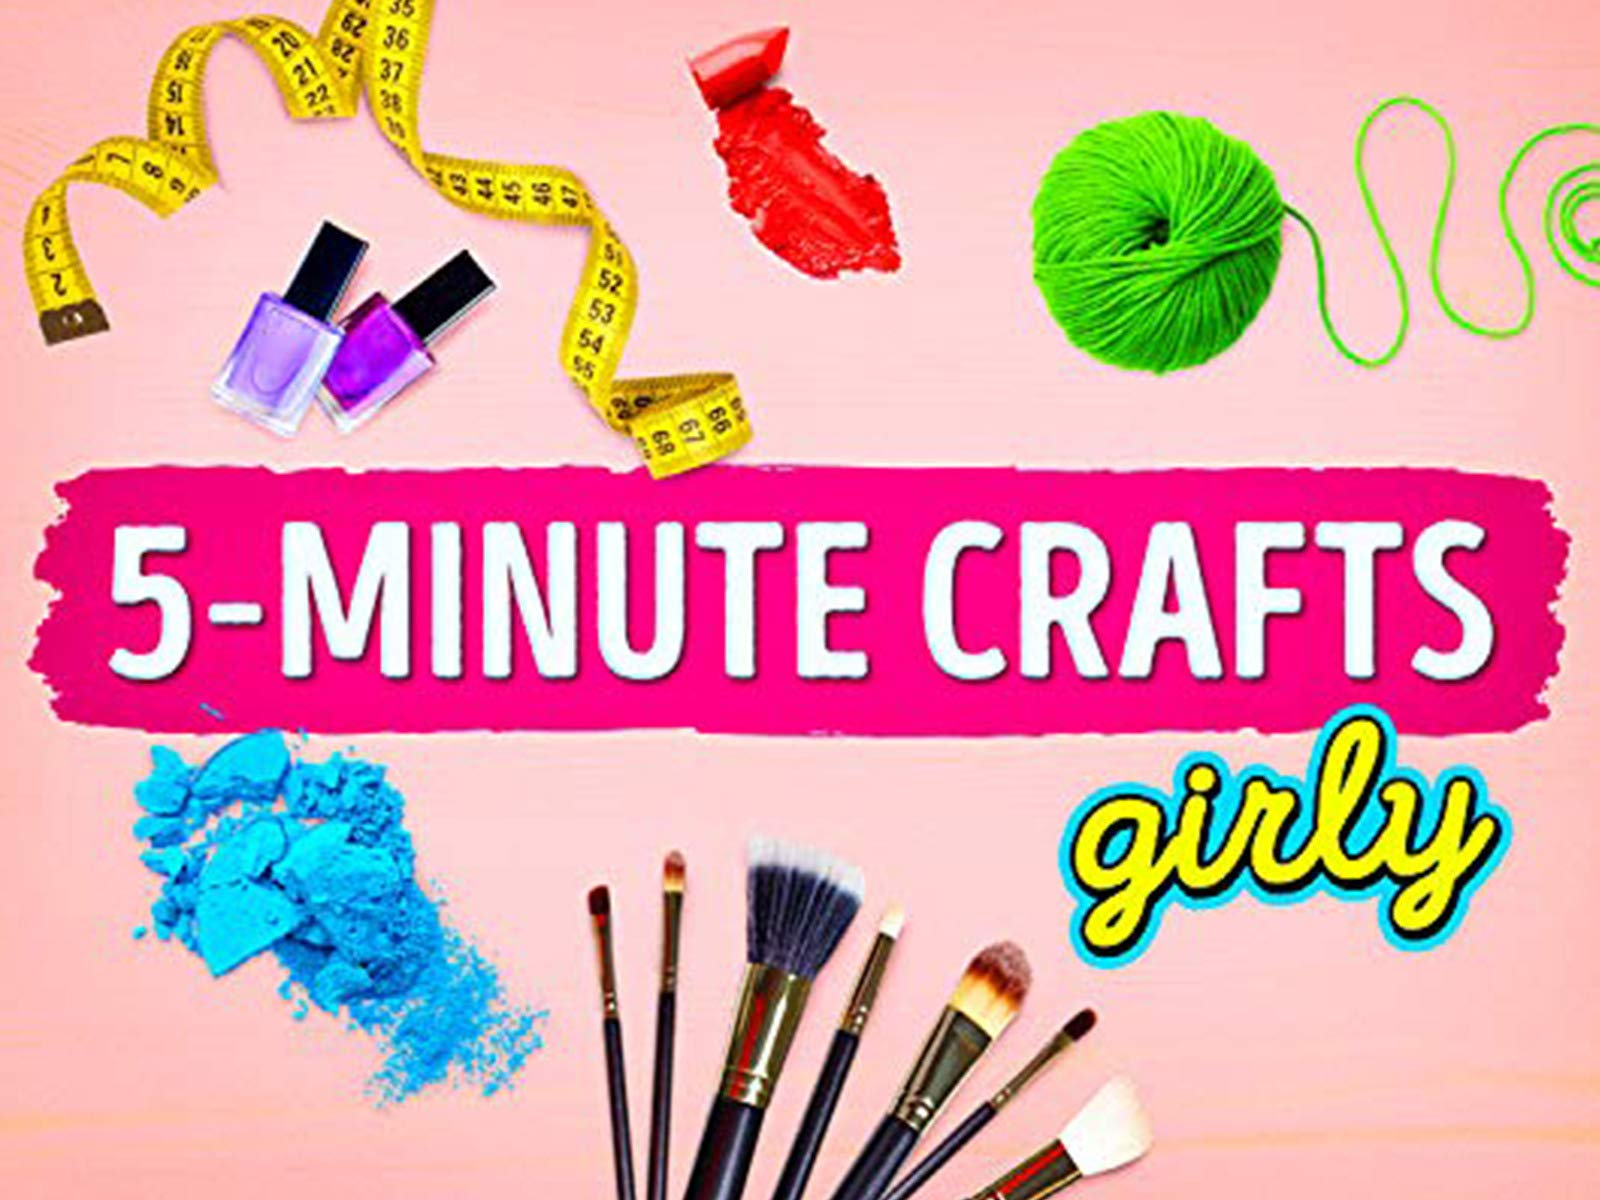 Watch 5 Minute Crafts Girly Prime Video